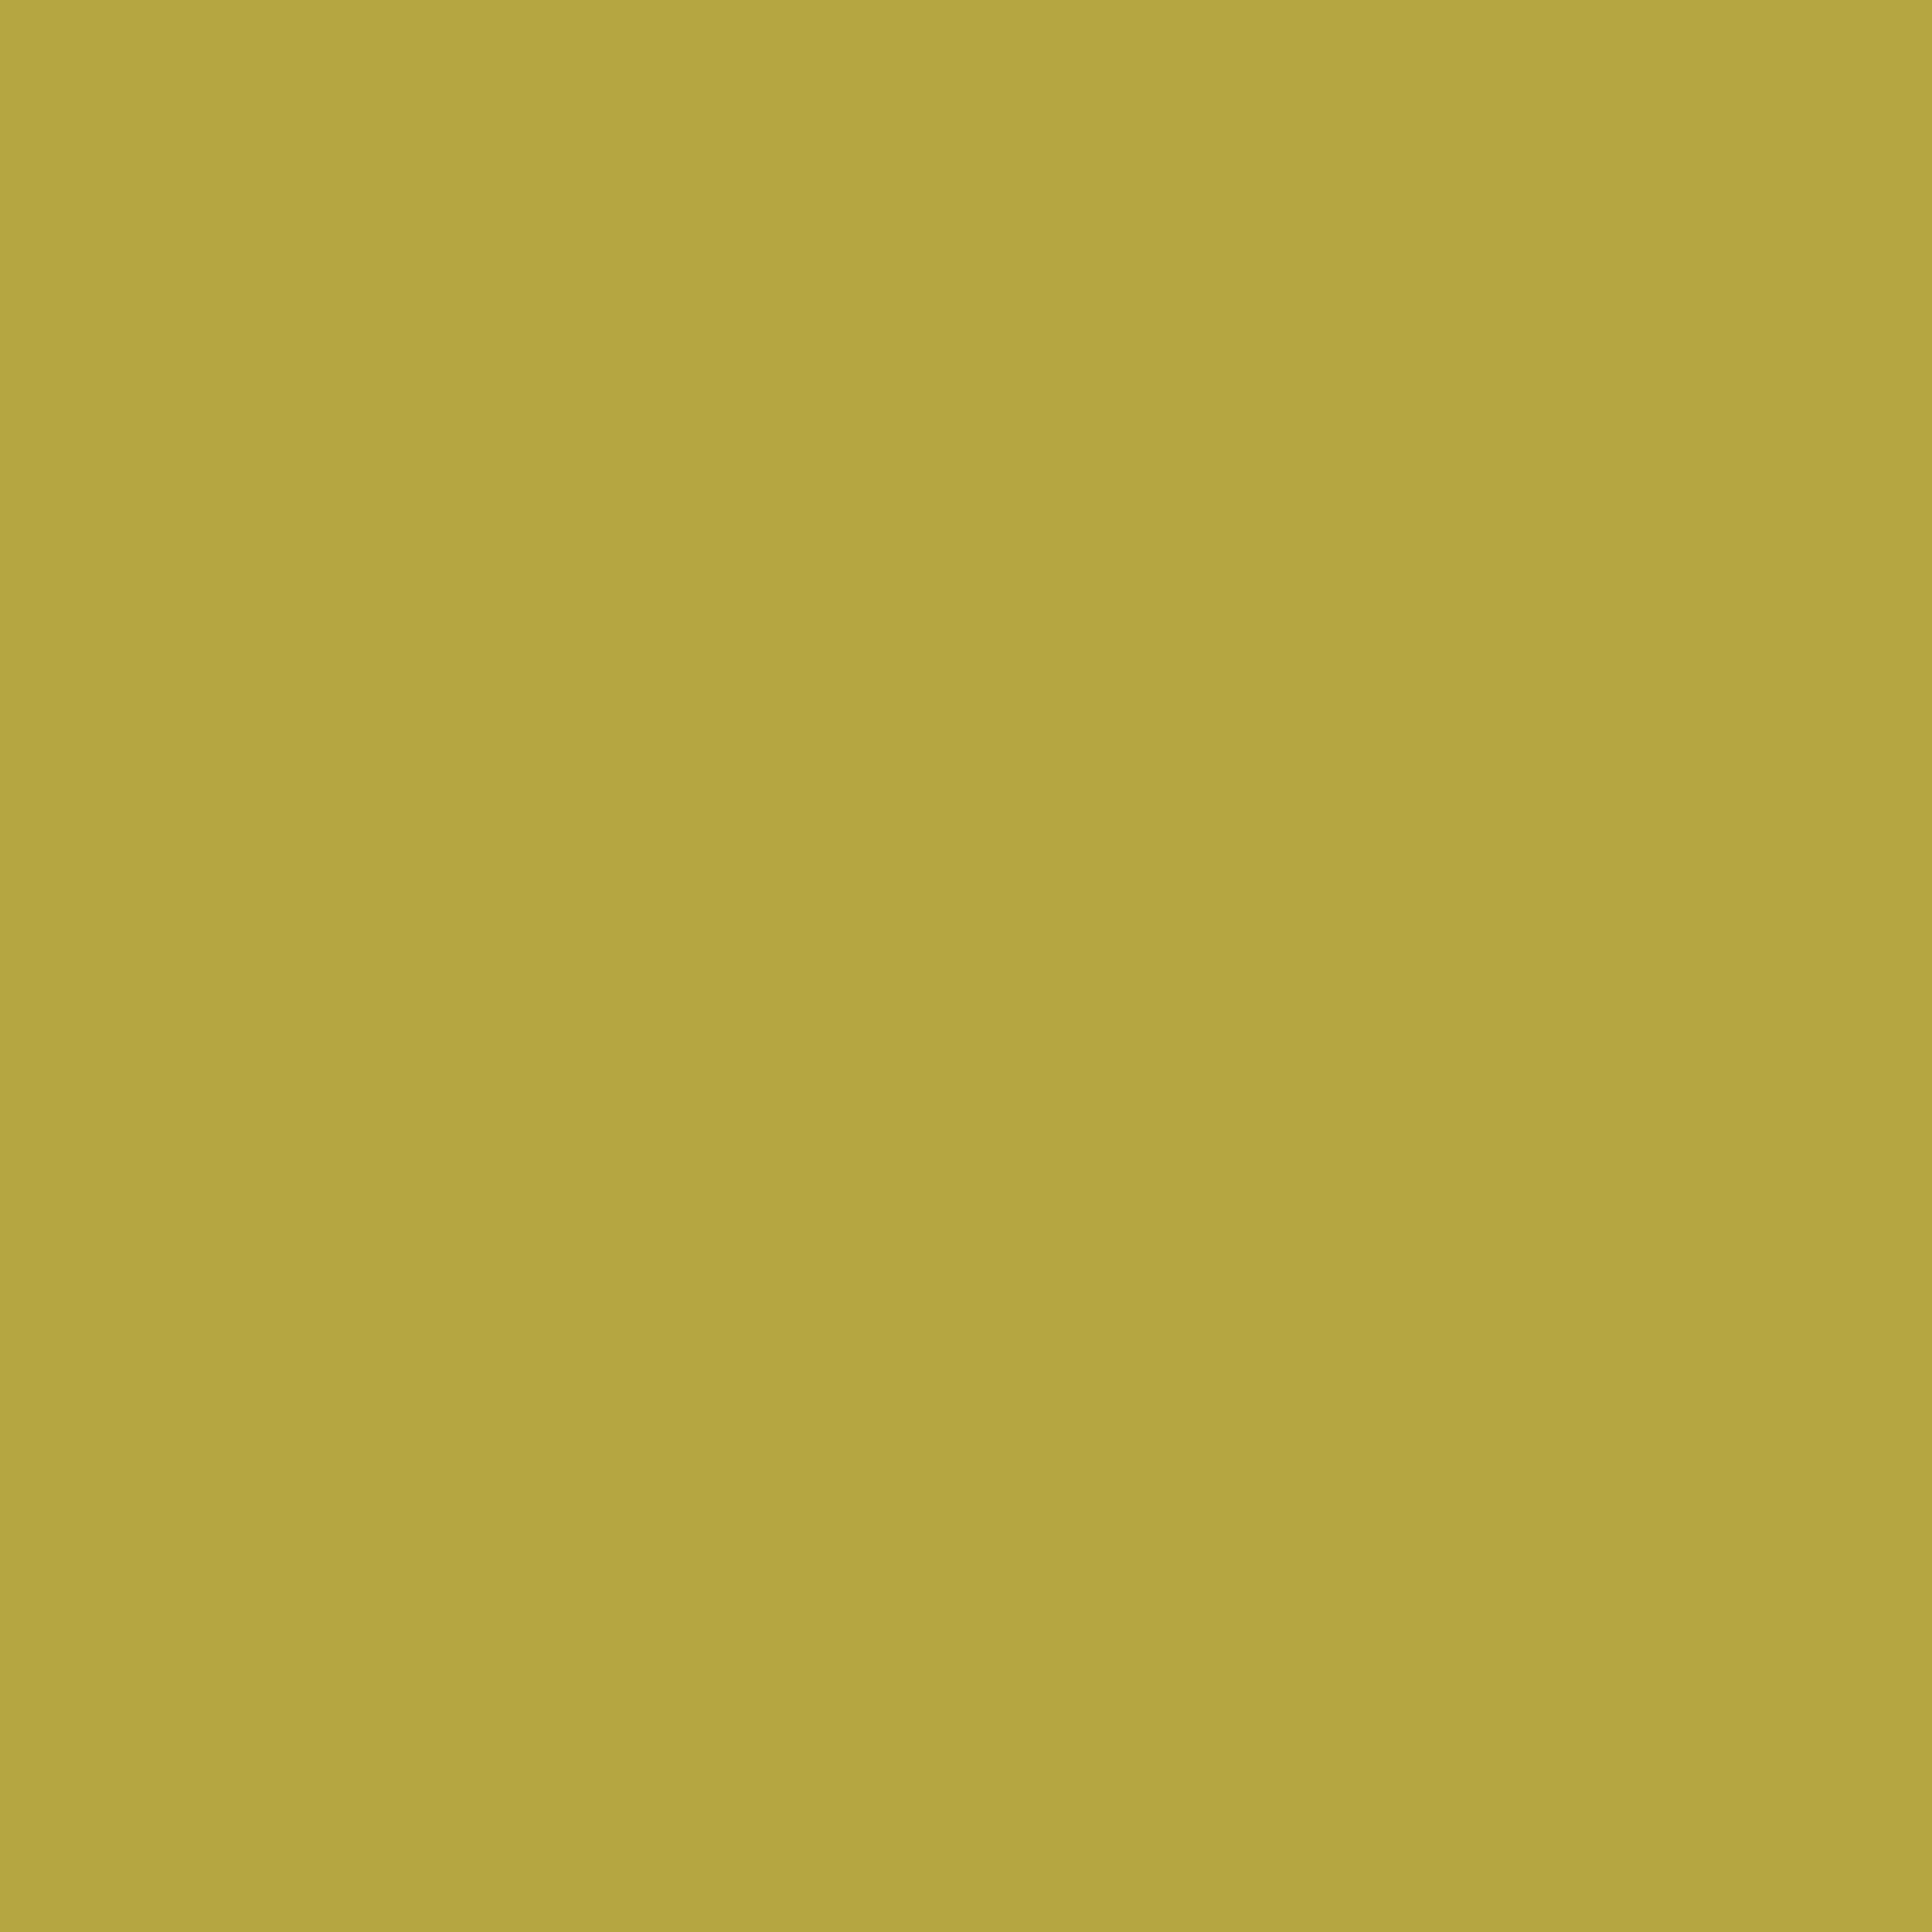 2732x2732 Brass Solid Color Background